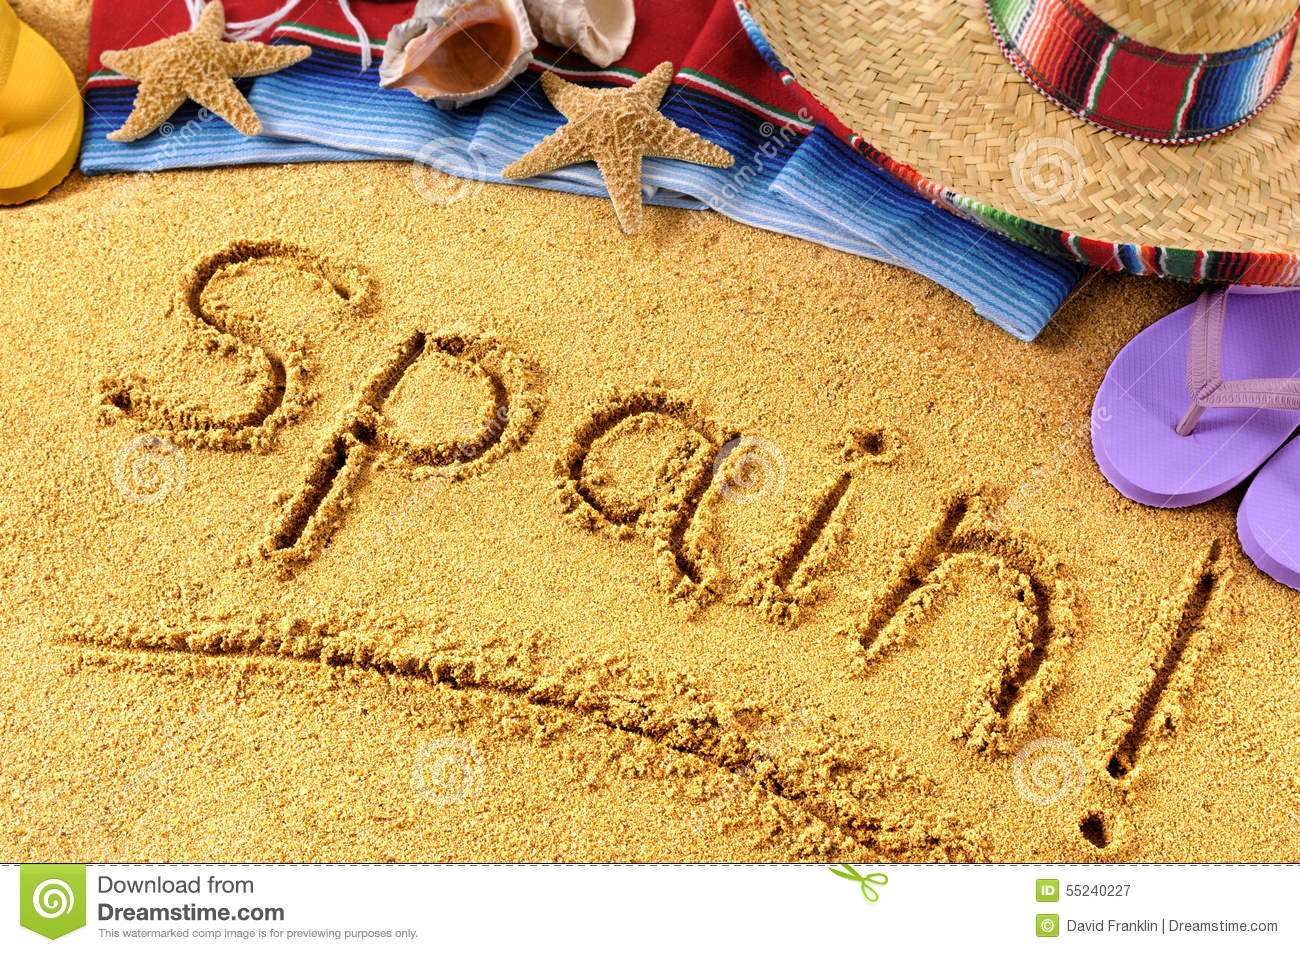 spanish 2 vacation essay Tourism in spain is the 3rd major contributor to the national economic life just after the industry and the business/banking sector, contributing about 10-11% of spain's gdp.